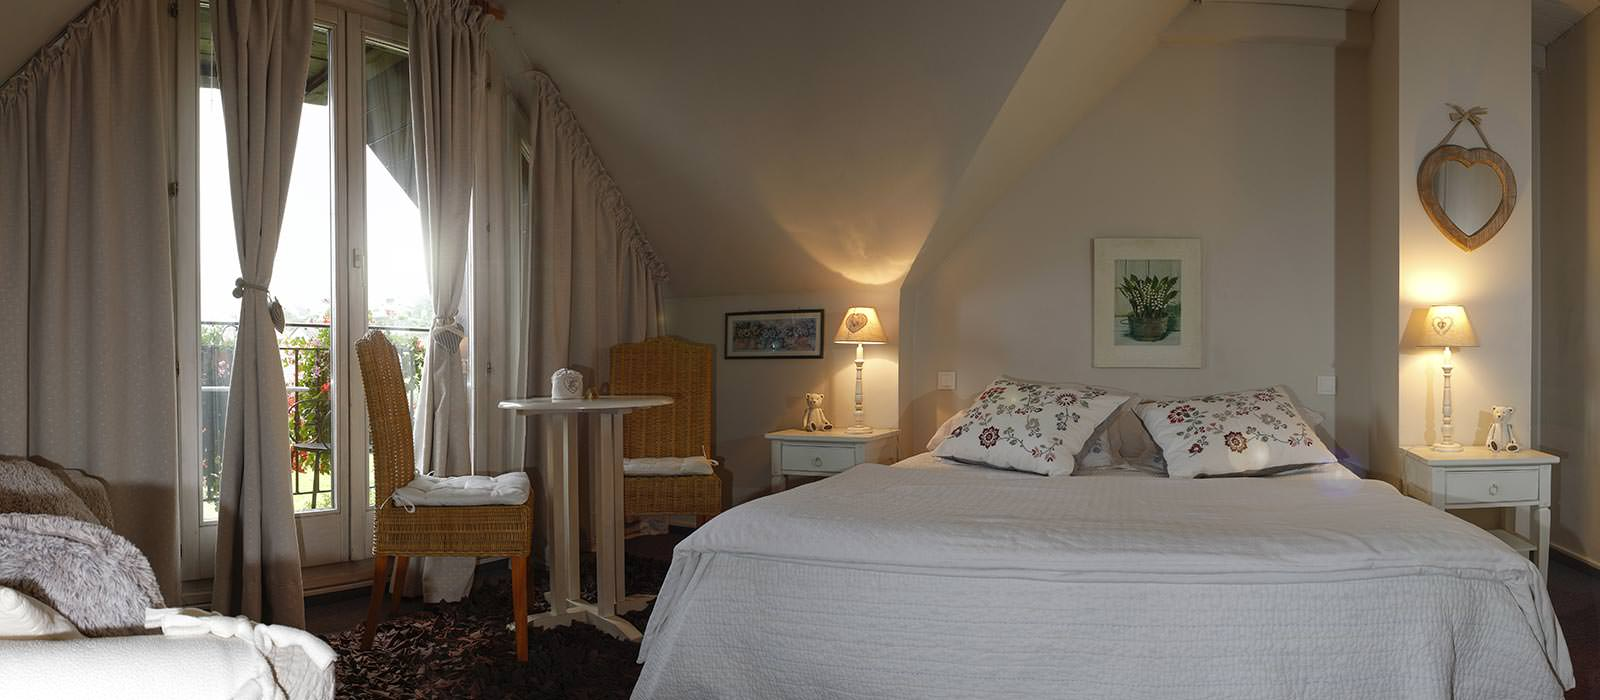 Chambre D Hôtes Alsace Bed Breakfast Guest Room Bellevue Alsace France Bellevue